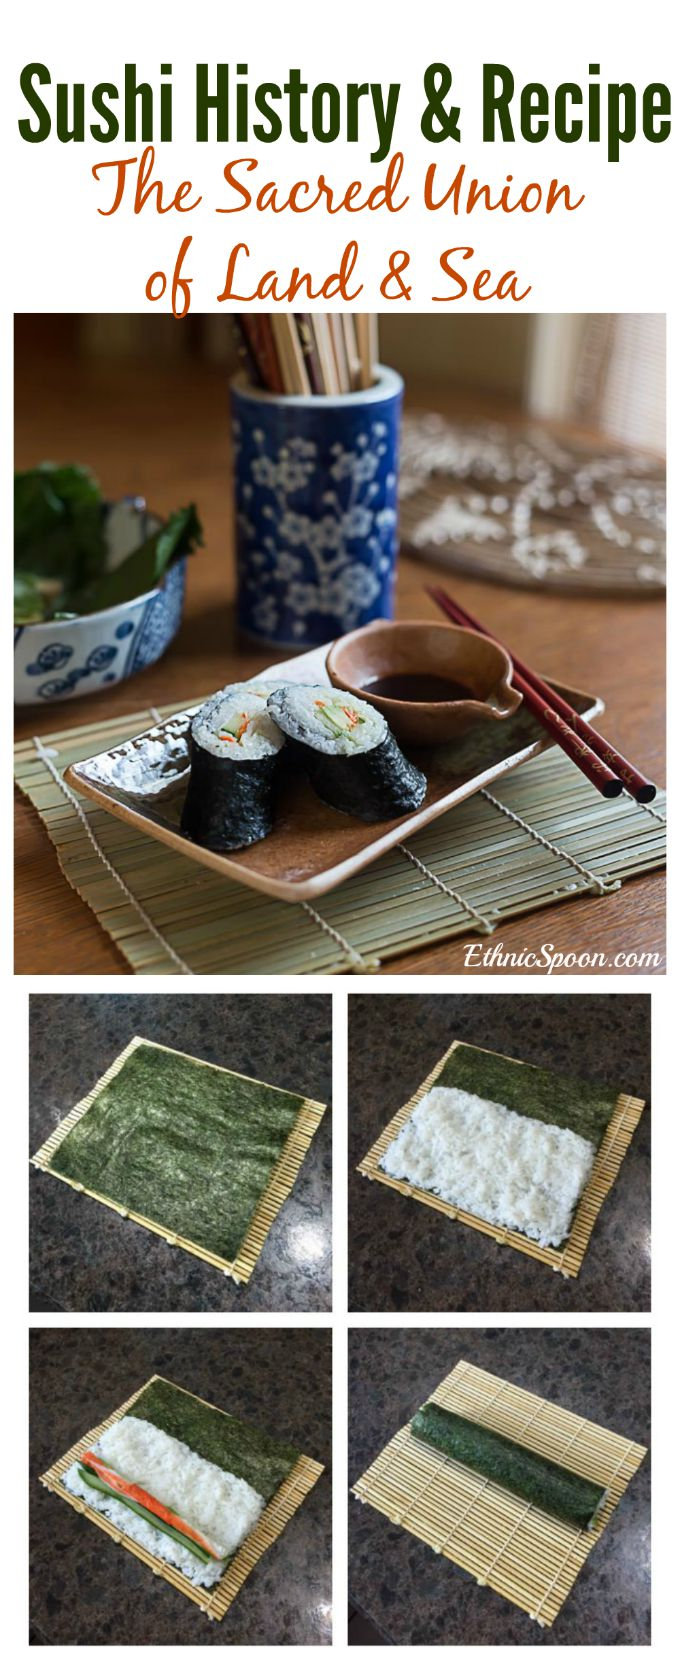 How to make crab or california roll sushi and the history of sushi. | ethnicspoon.com